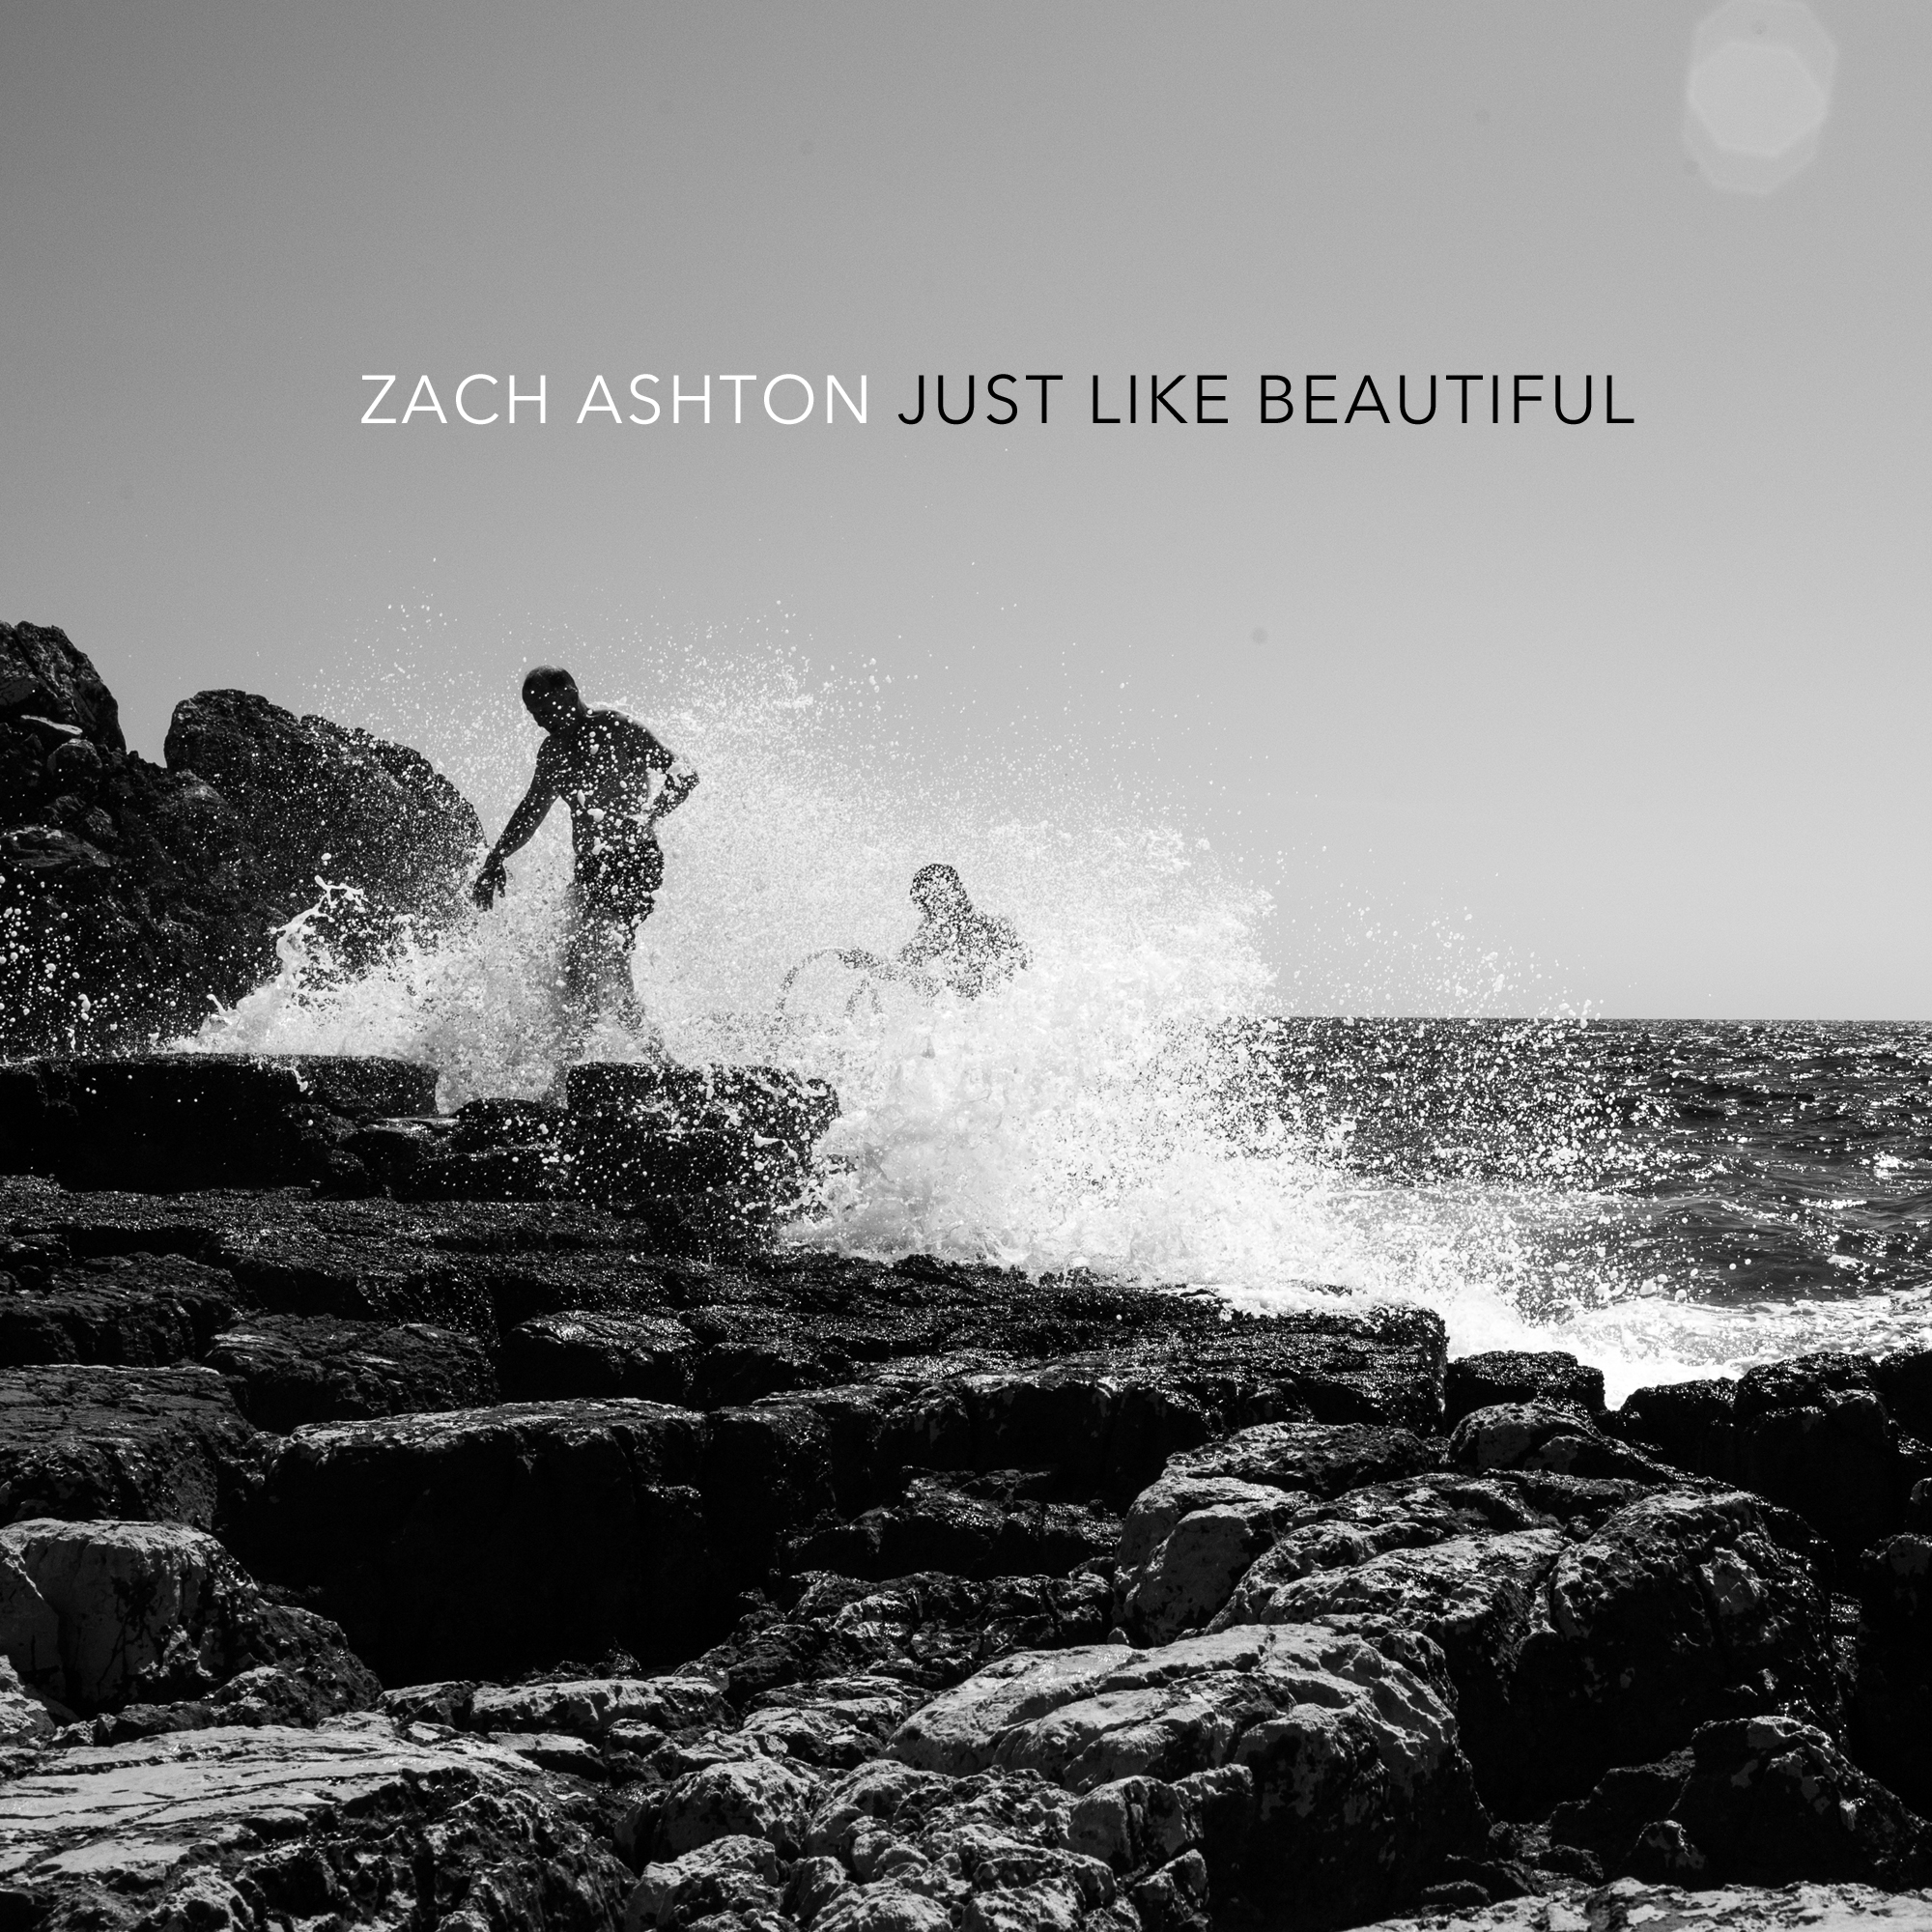 ZACH-ASHTON-JUST-LIKE-BEAUTIFUL.jpg